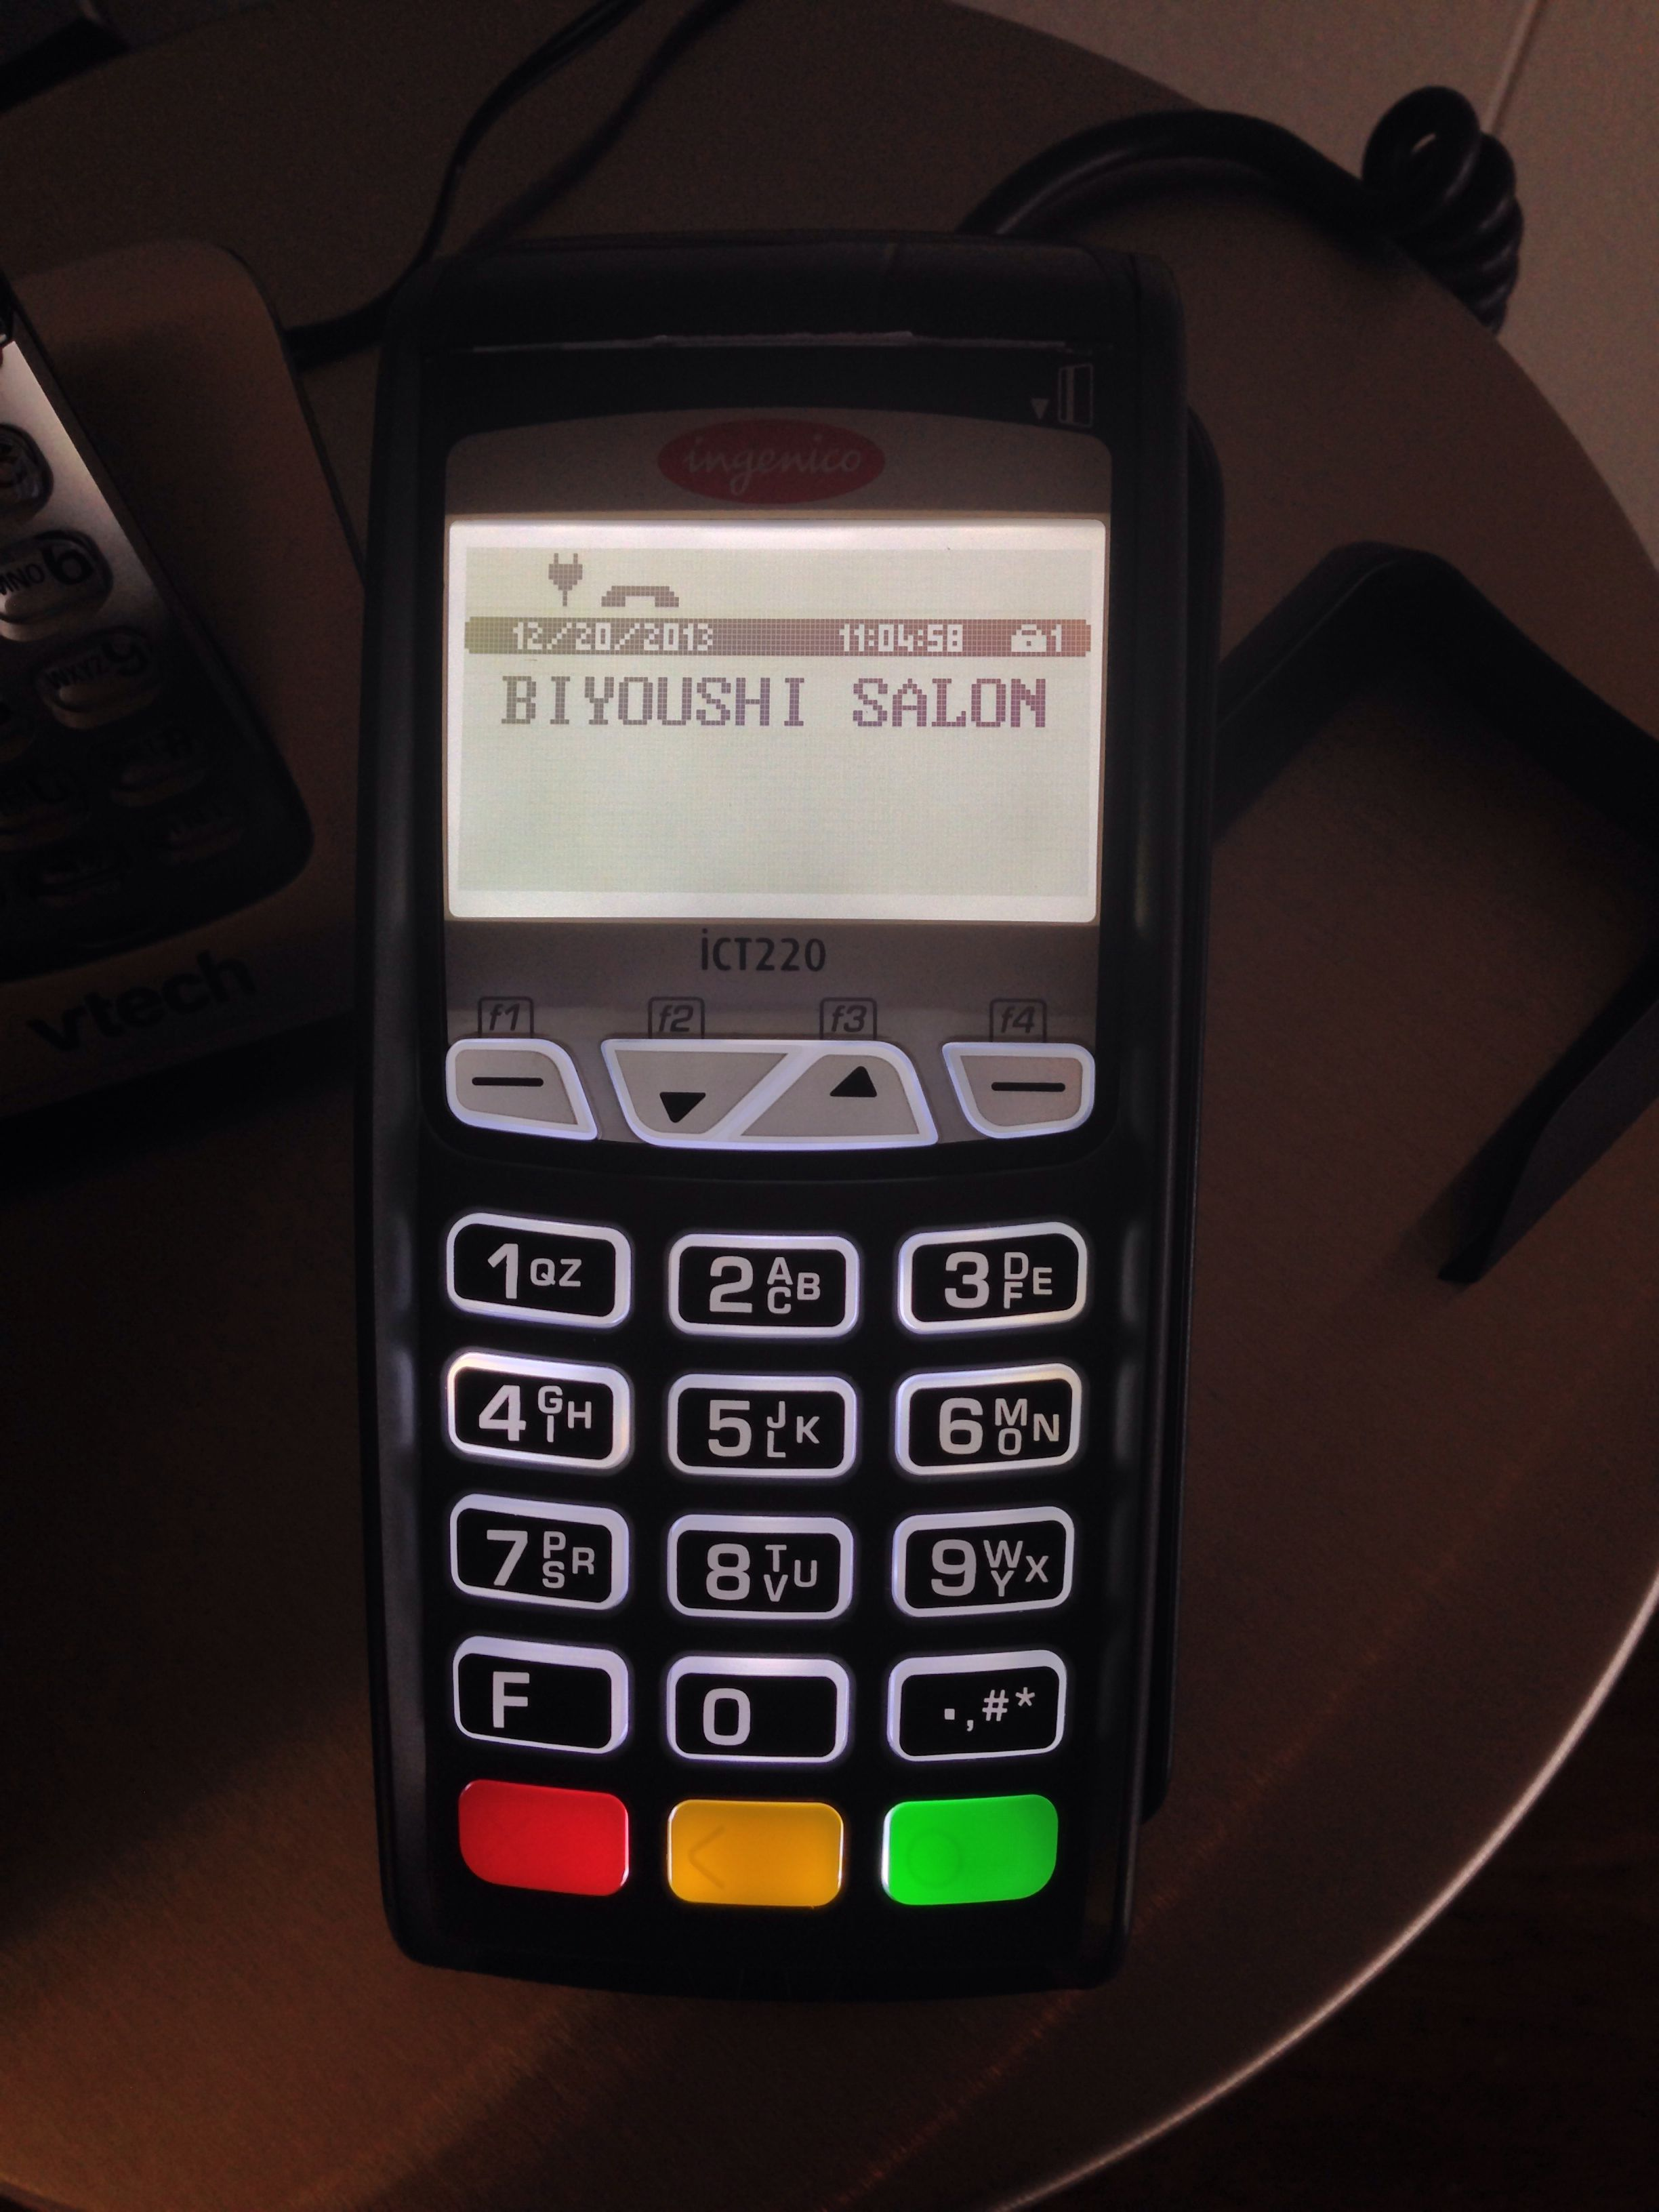 Best Pdq Card Machines For Small Businesses Card Machine Prices Uk Costs Cool Pictures Small Business Cards Card Machine